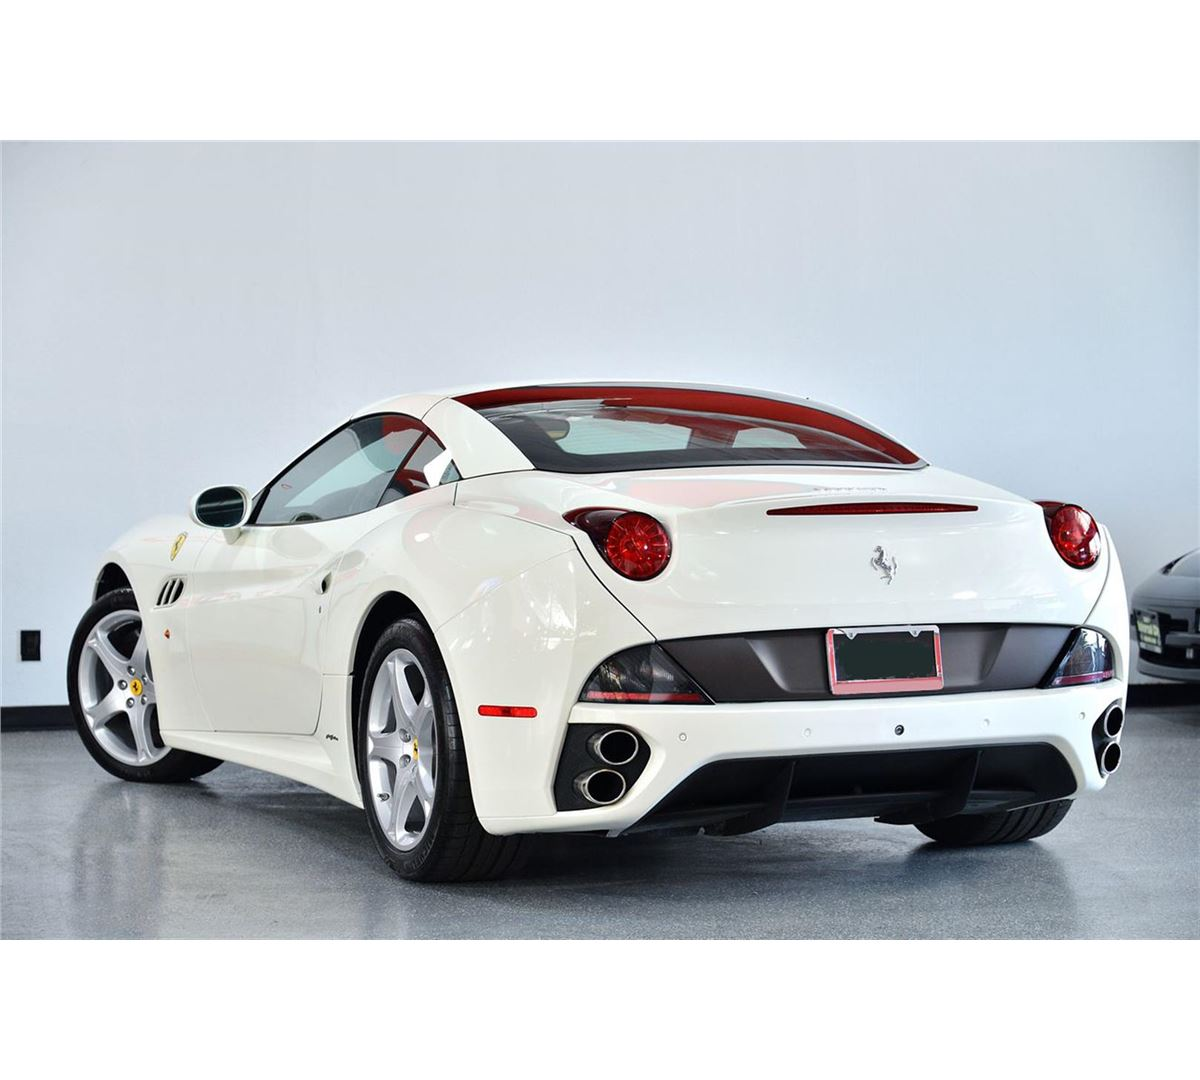 Ferrari Convertible: 2011 White Ferrari California Base Convertible